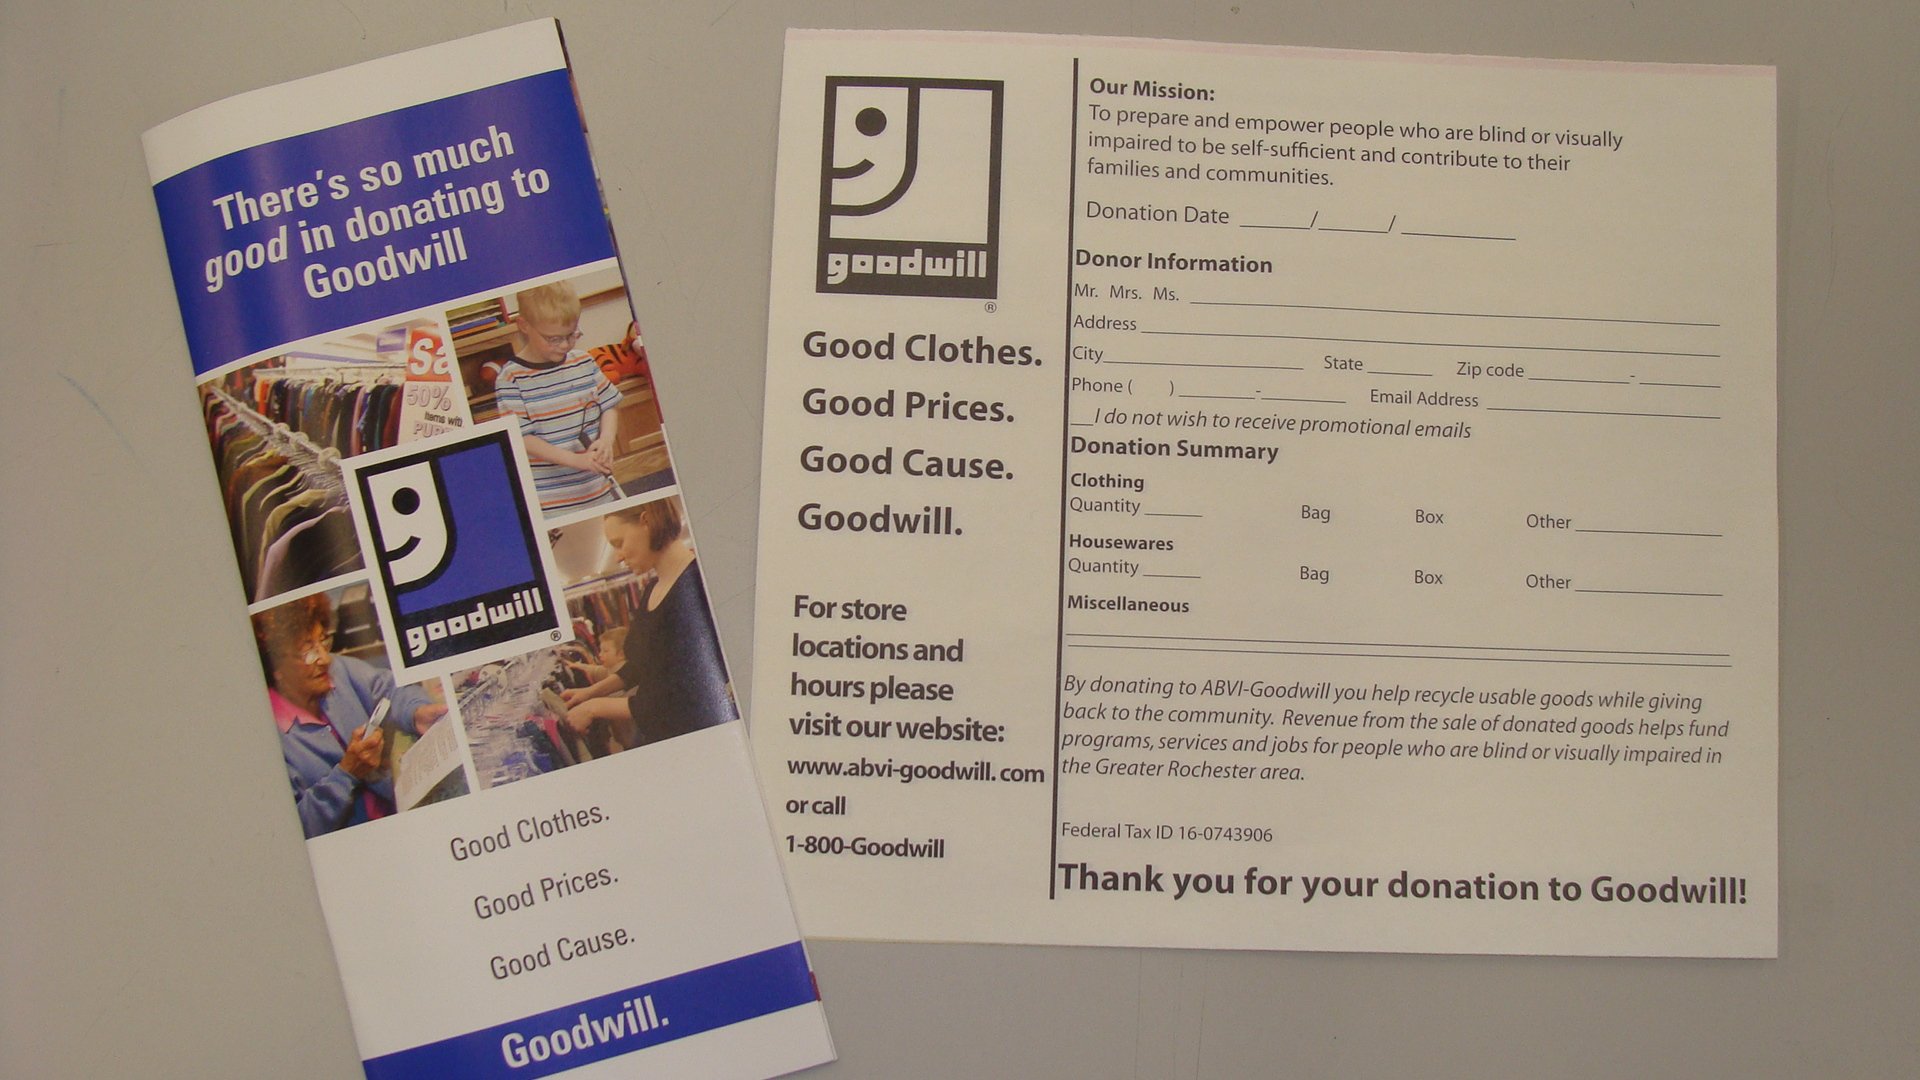 End Of The Year Creates Need For Donations At Abvi Goodwill